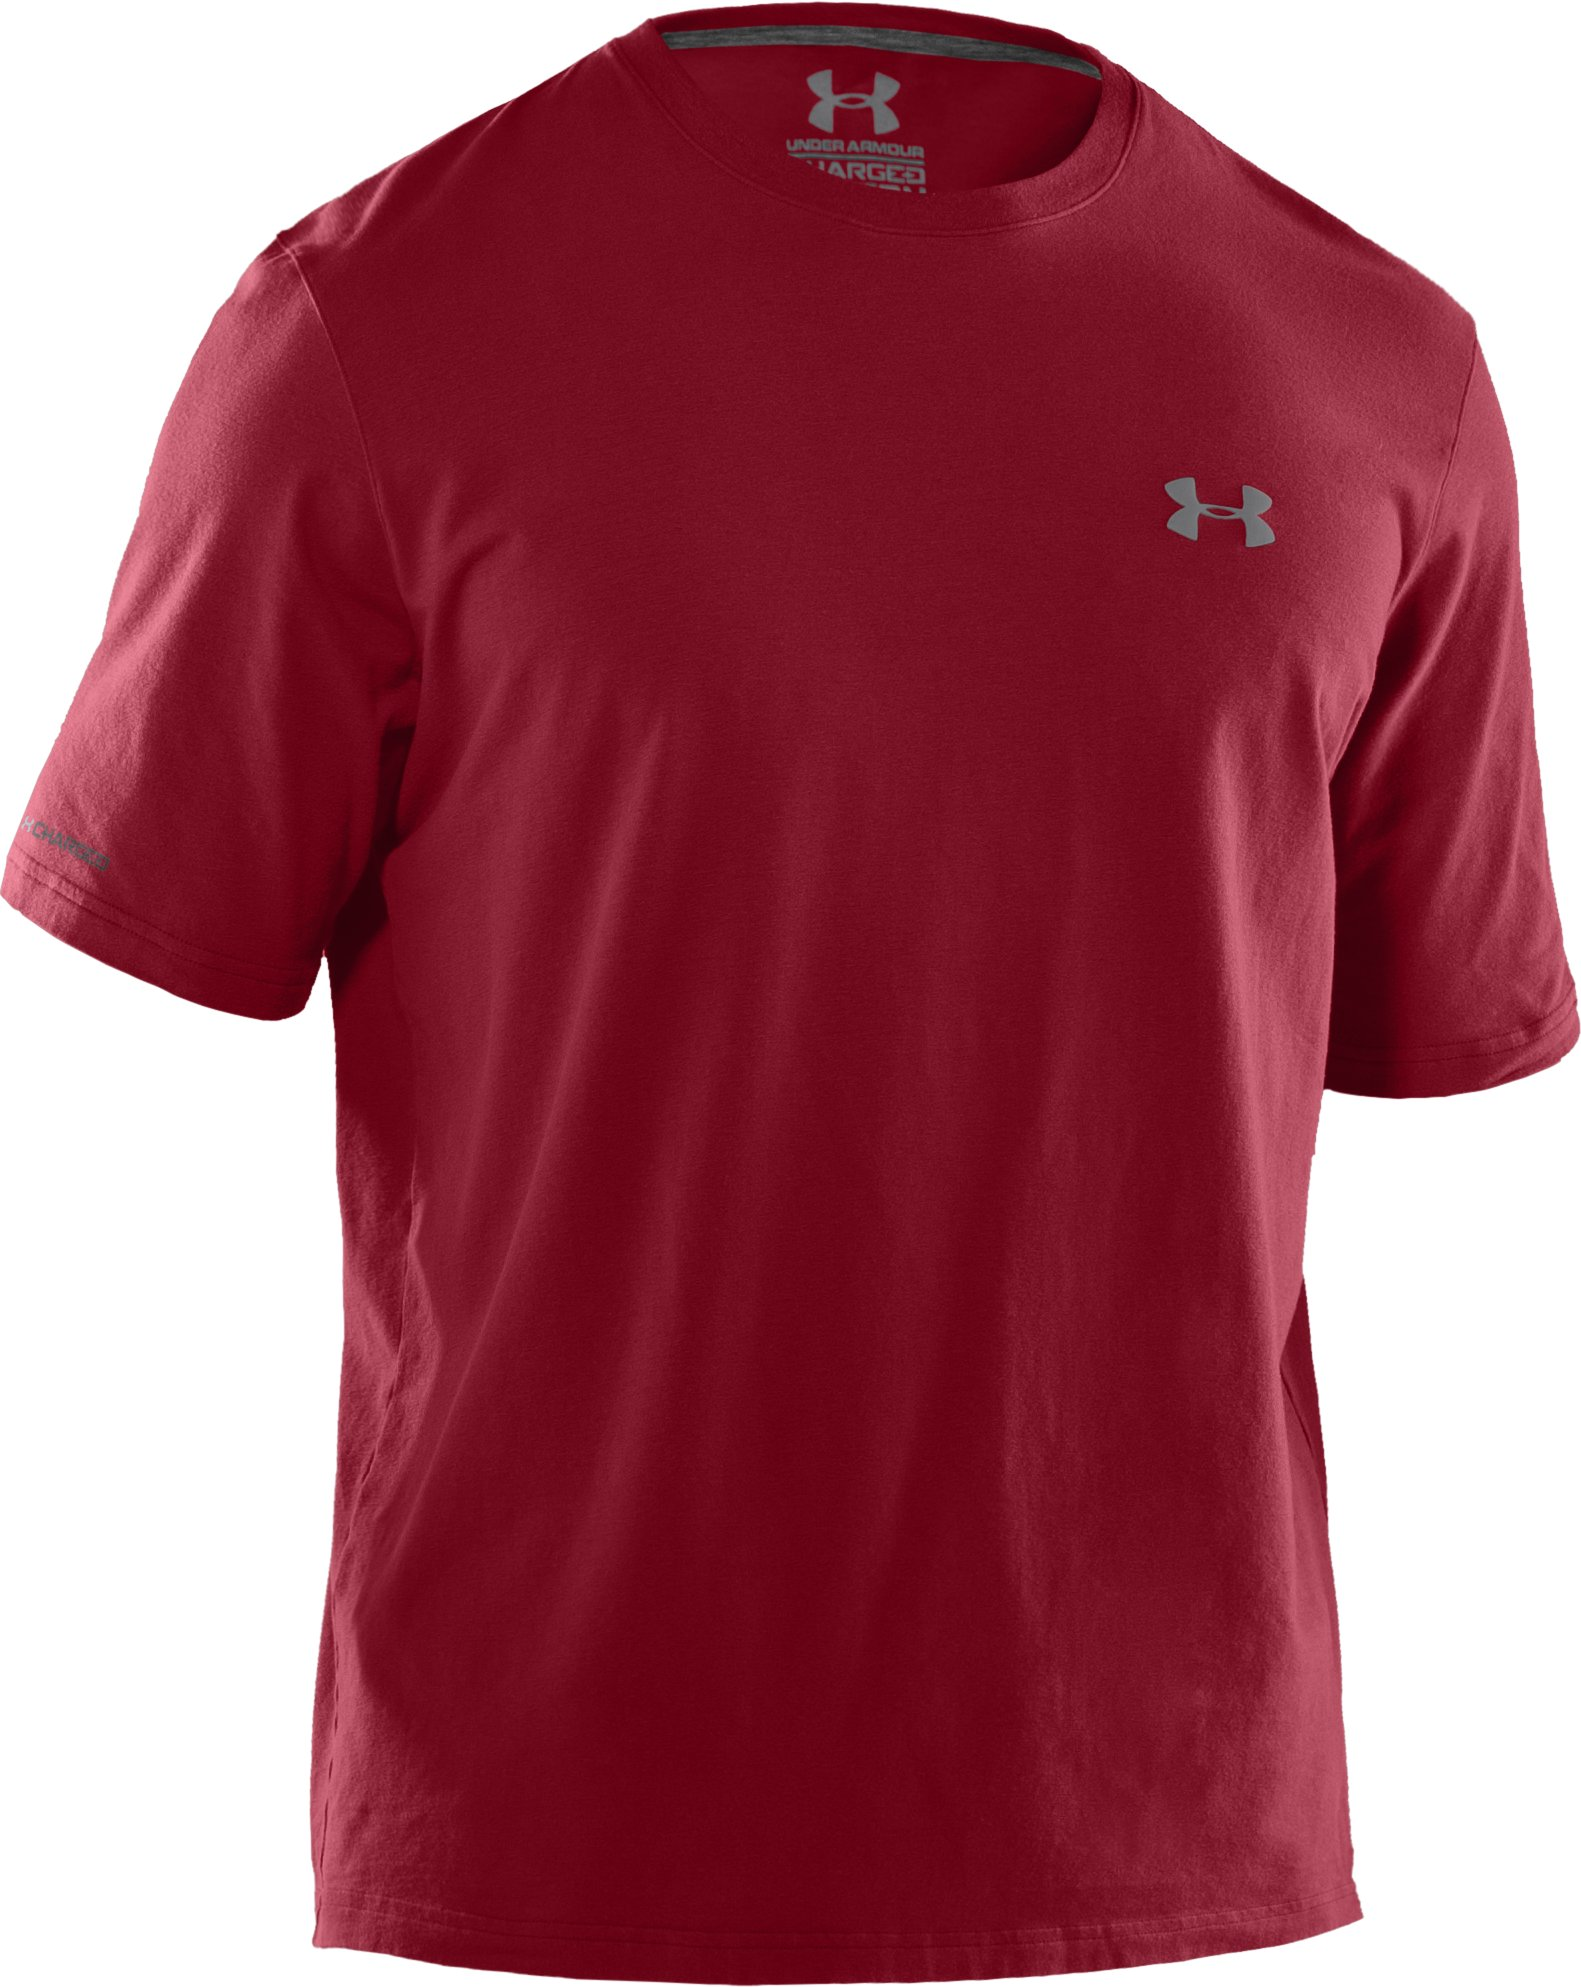 Men's Charged Cotton® T-Shirt, Crimson